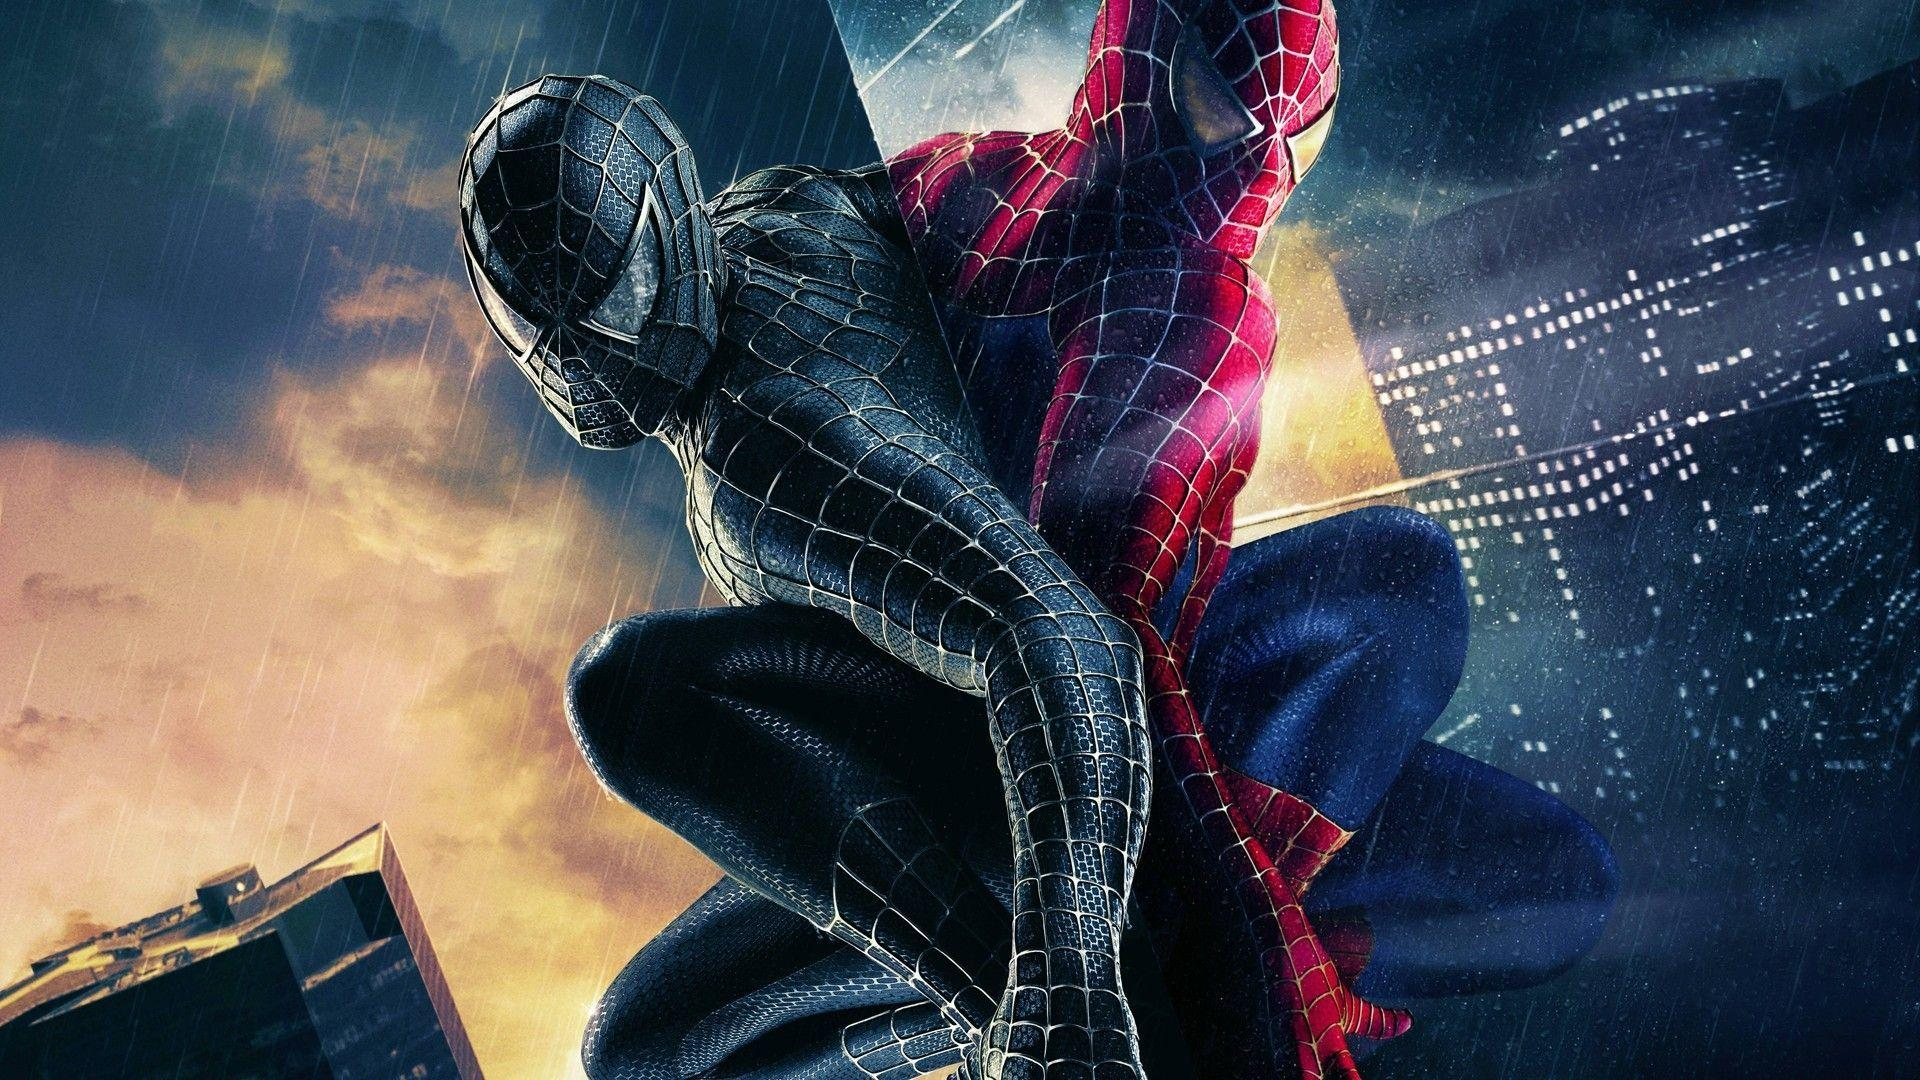 Wallpapers For Spiderman Hd Wallpaper Desktop